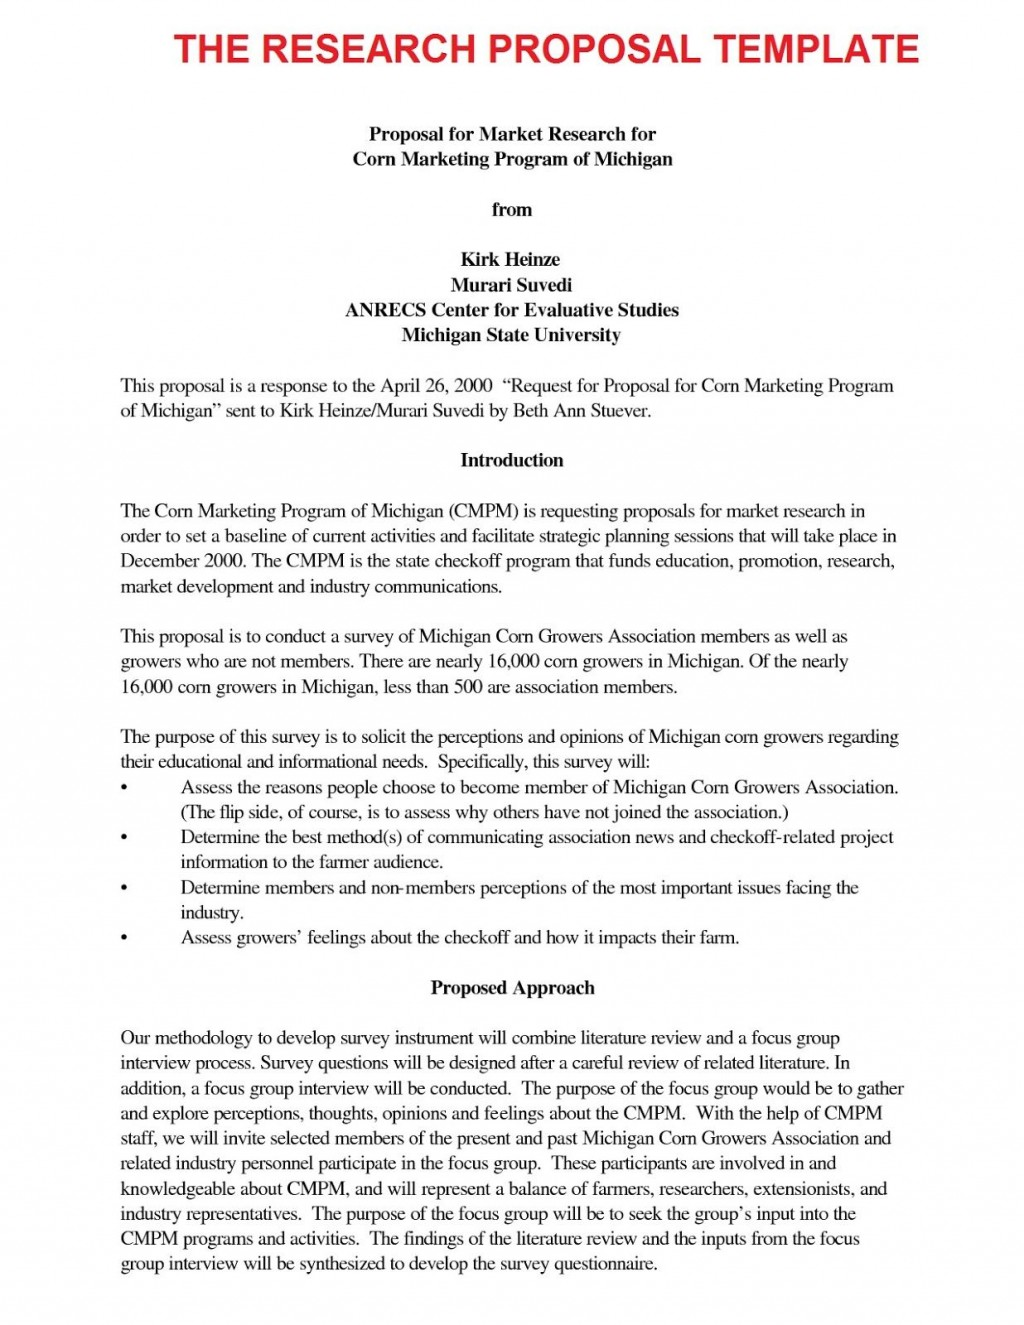 007 Cite Research Paper Generator Top Harvard Referencing How To My Sources In Mla Format Large